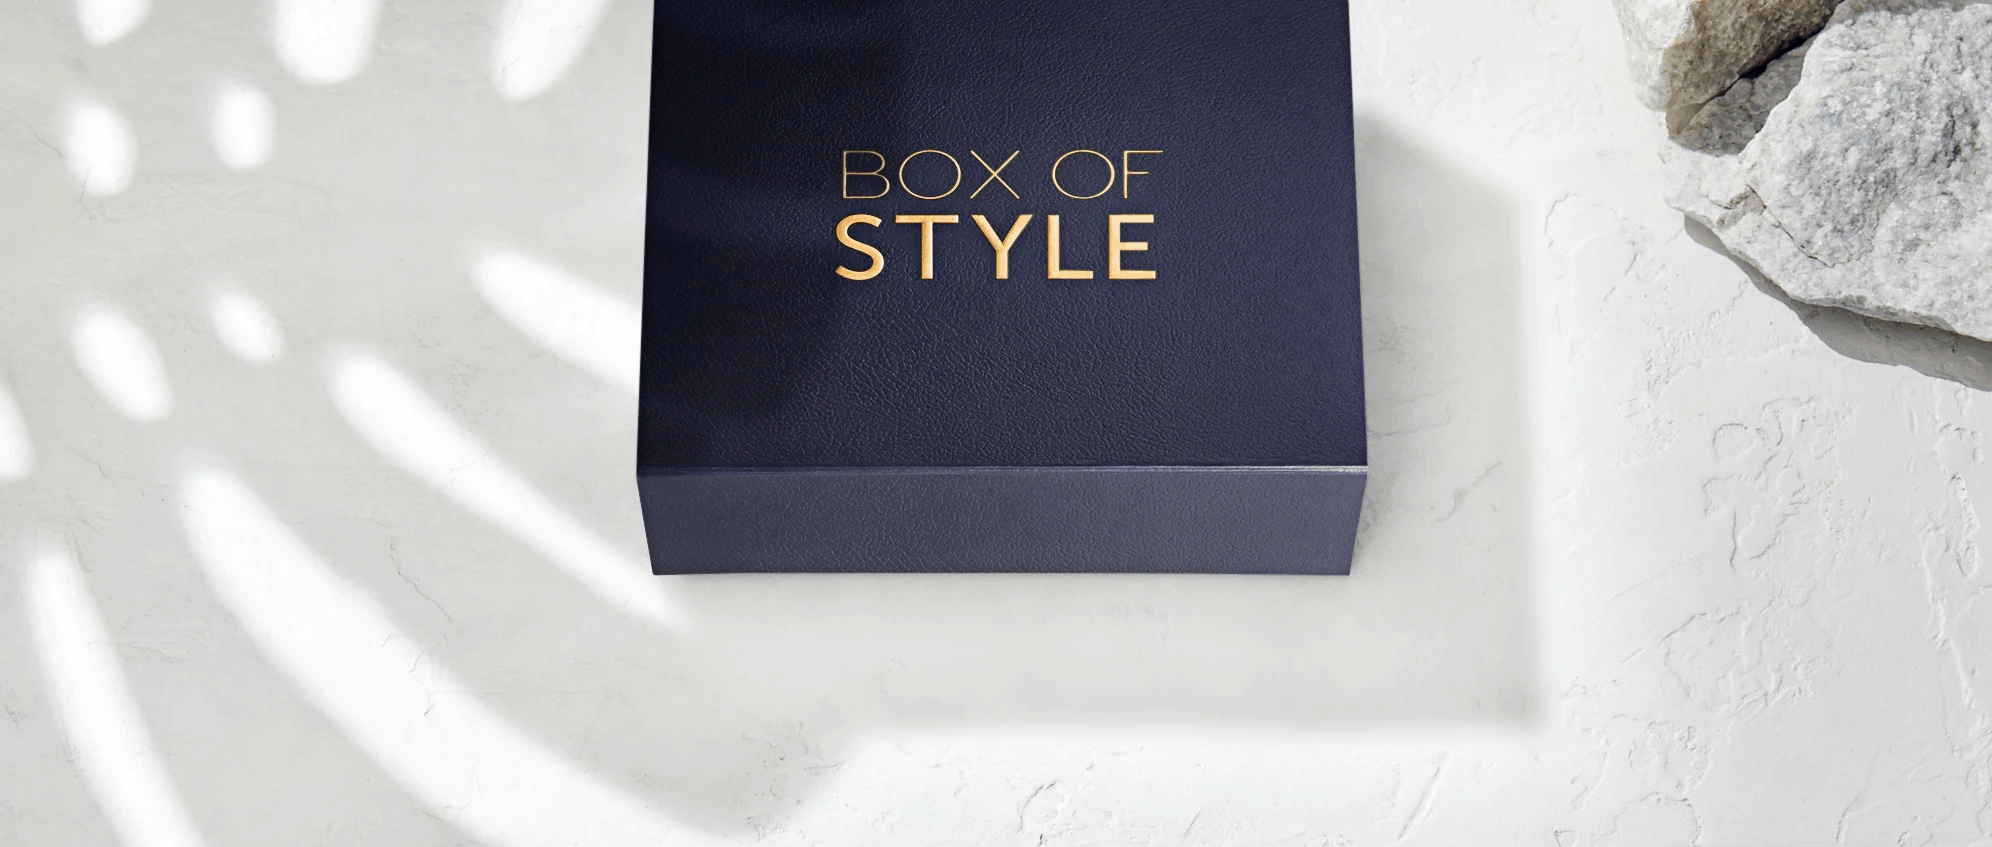 Box of Style by Rachel Zoe Coupon: Get $25 Off!